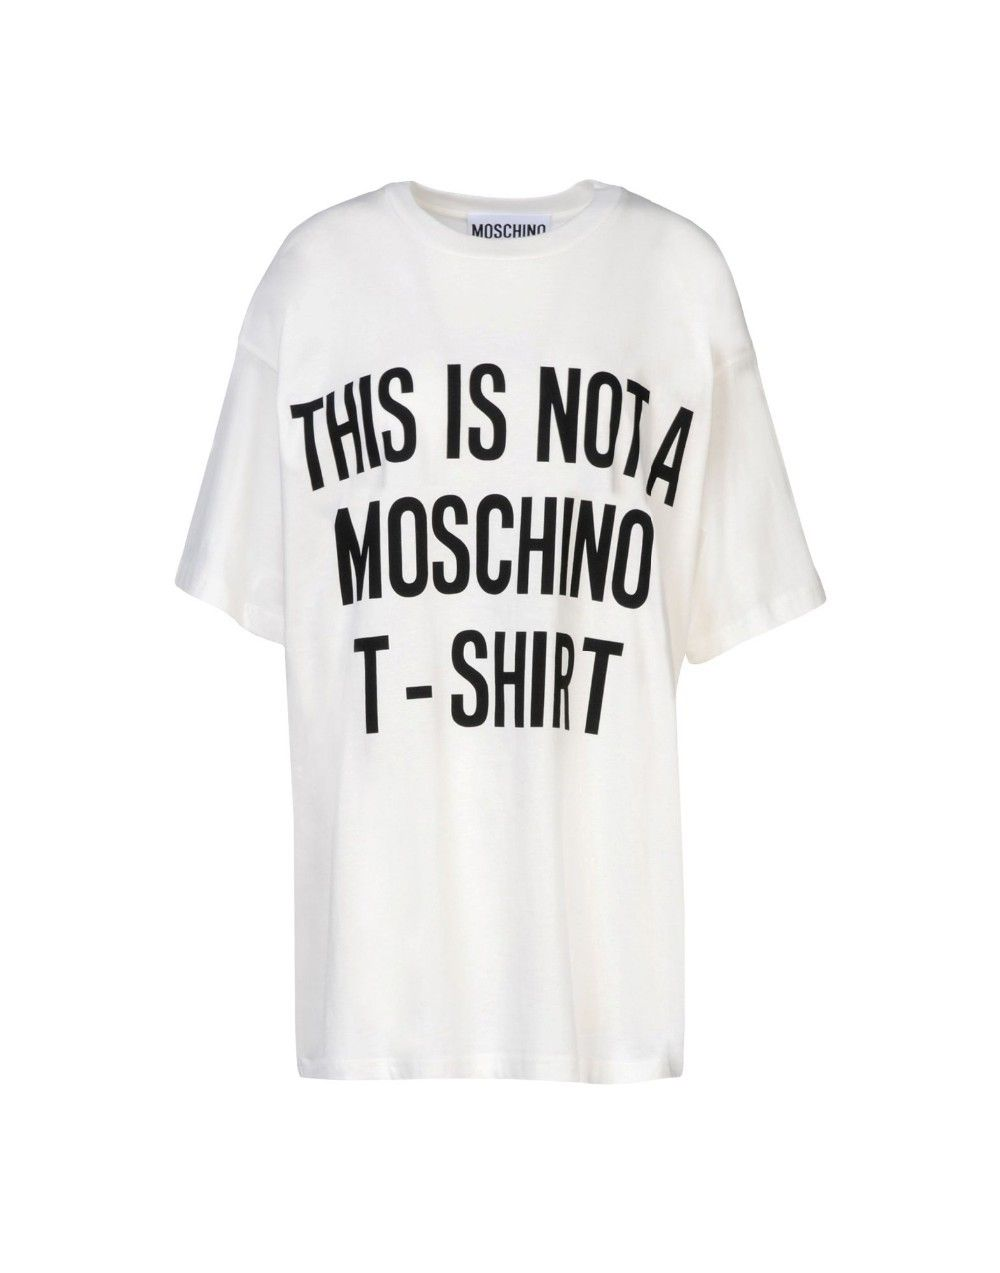 975fc41dda THIS IS NOT A MOSCHINO T - SHIRT http   www.aliexpress.